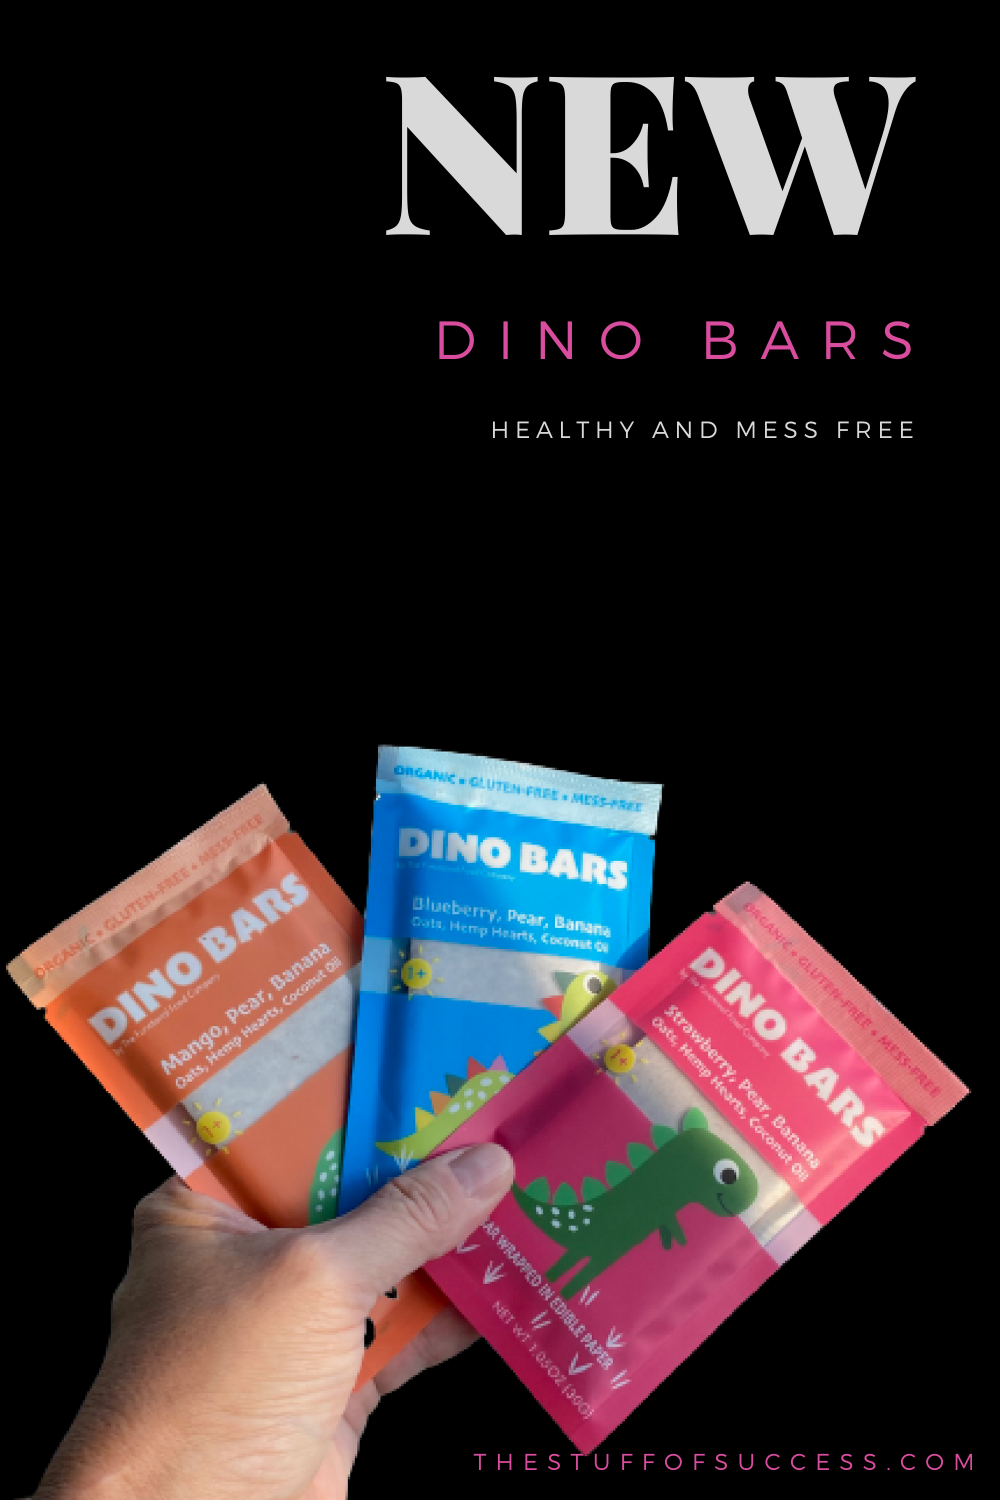 NEW Dino Bars - Healthy and Mess Free